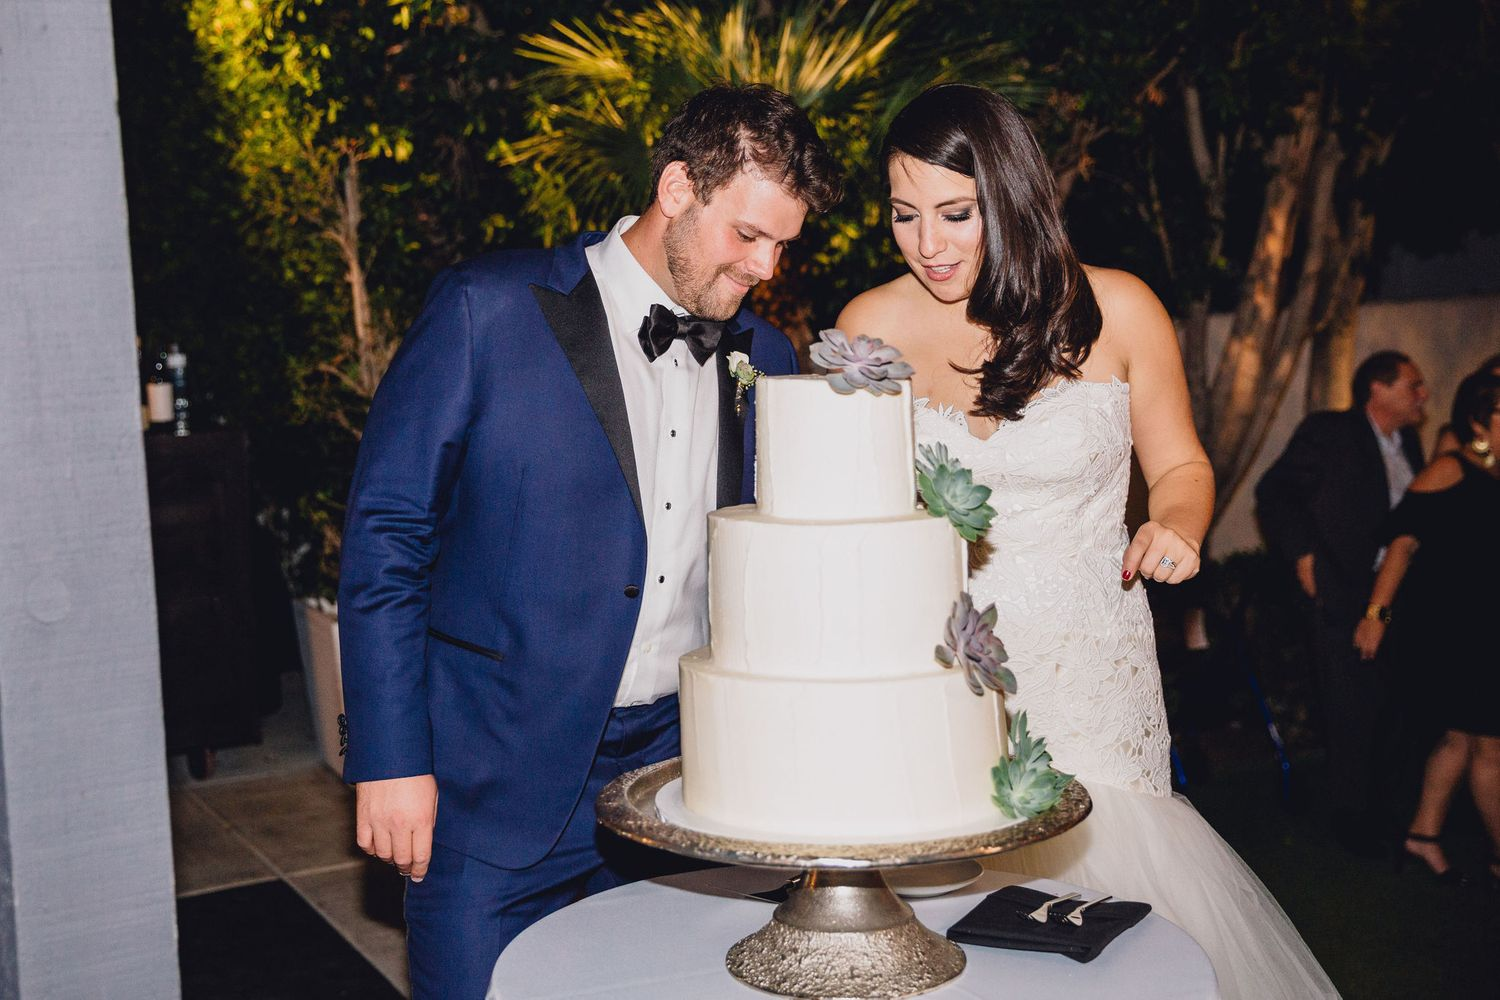 Cake Cutting | Avalon Hotel Palm Springs